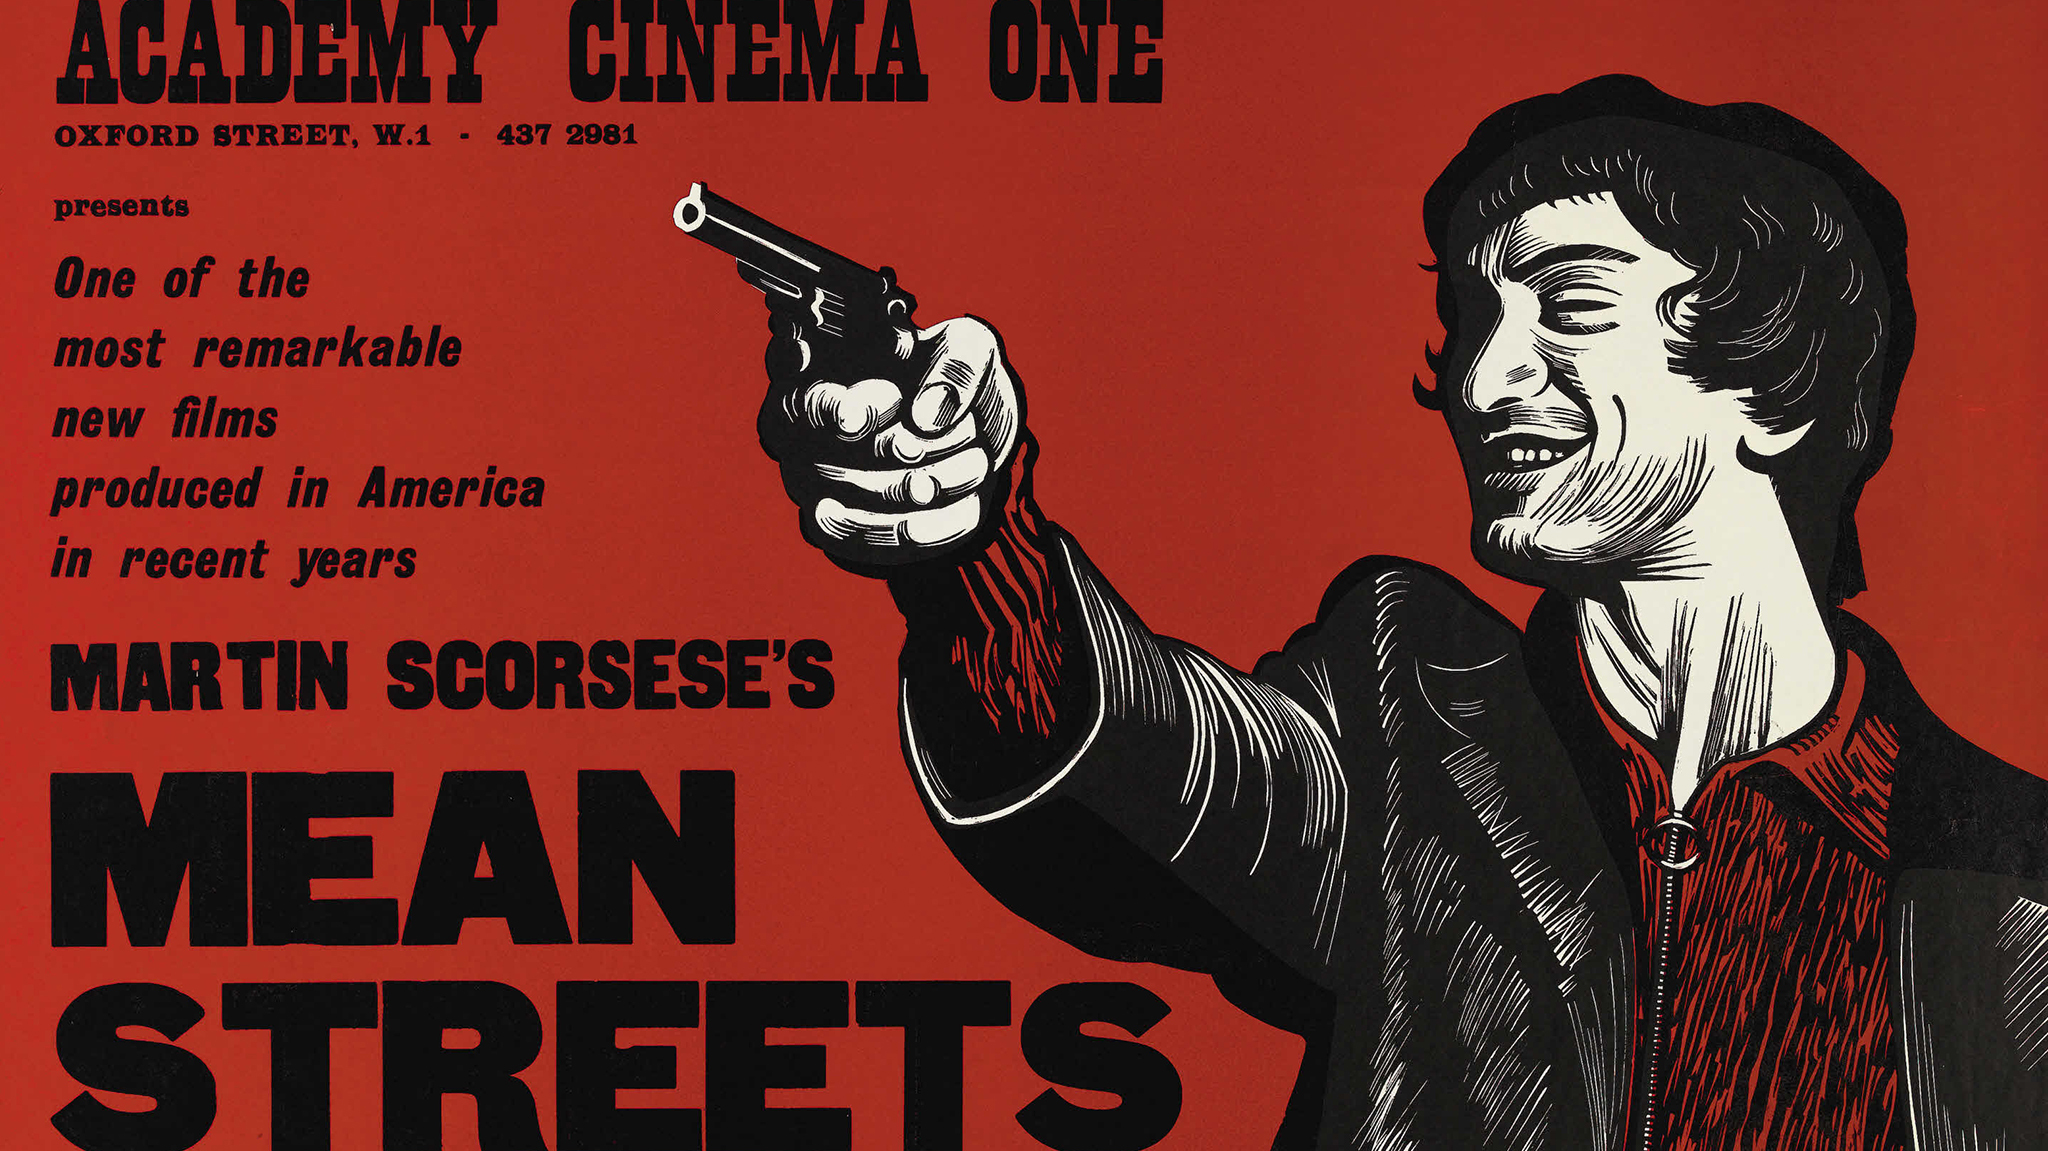 View Martin Scorsese's collection of movie posters